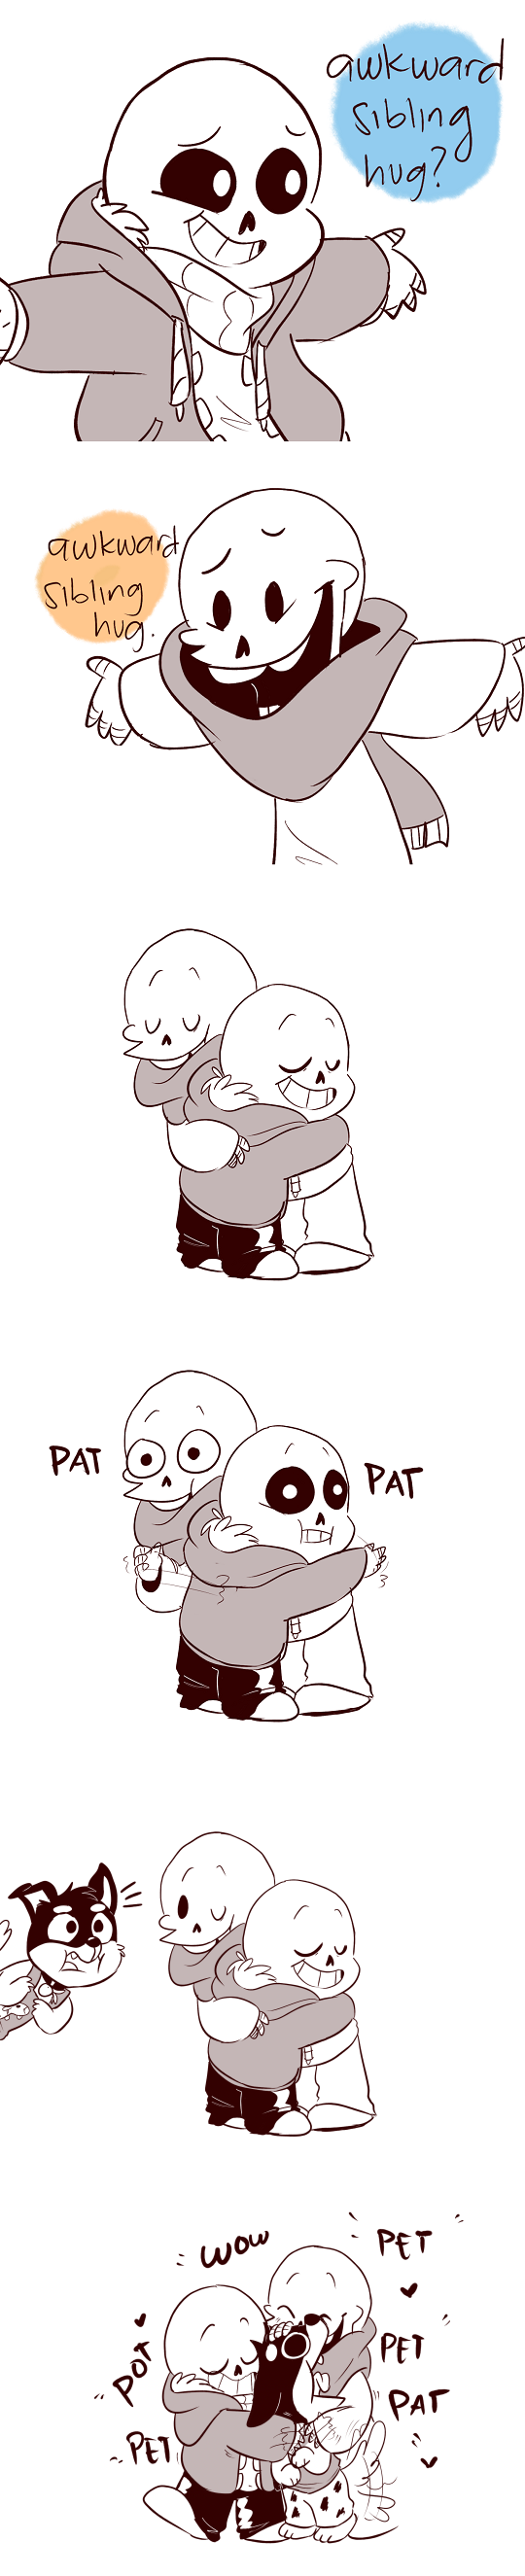 awkward sibling hug undertale know your meme